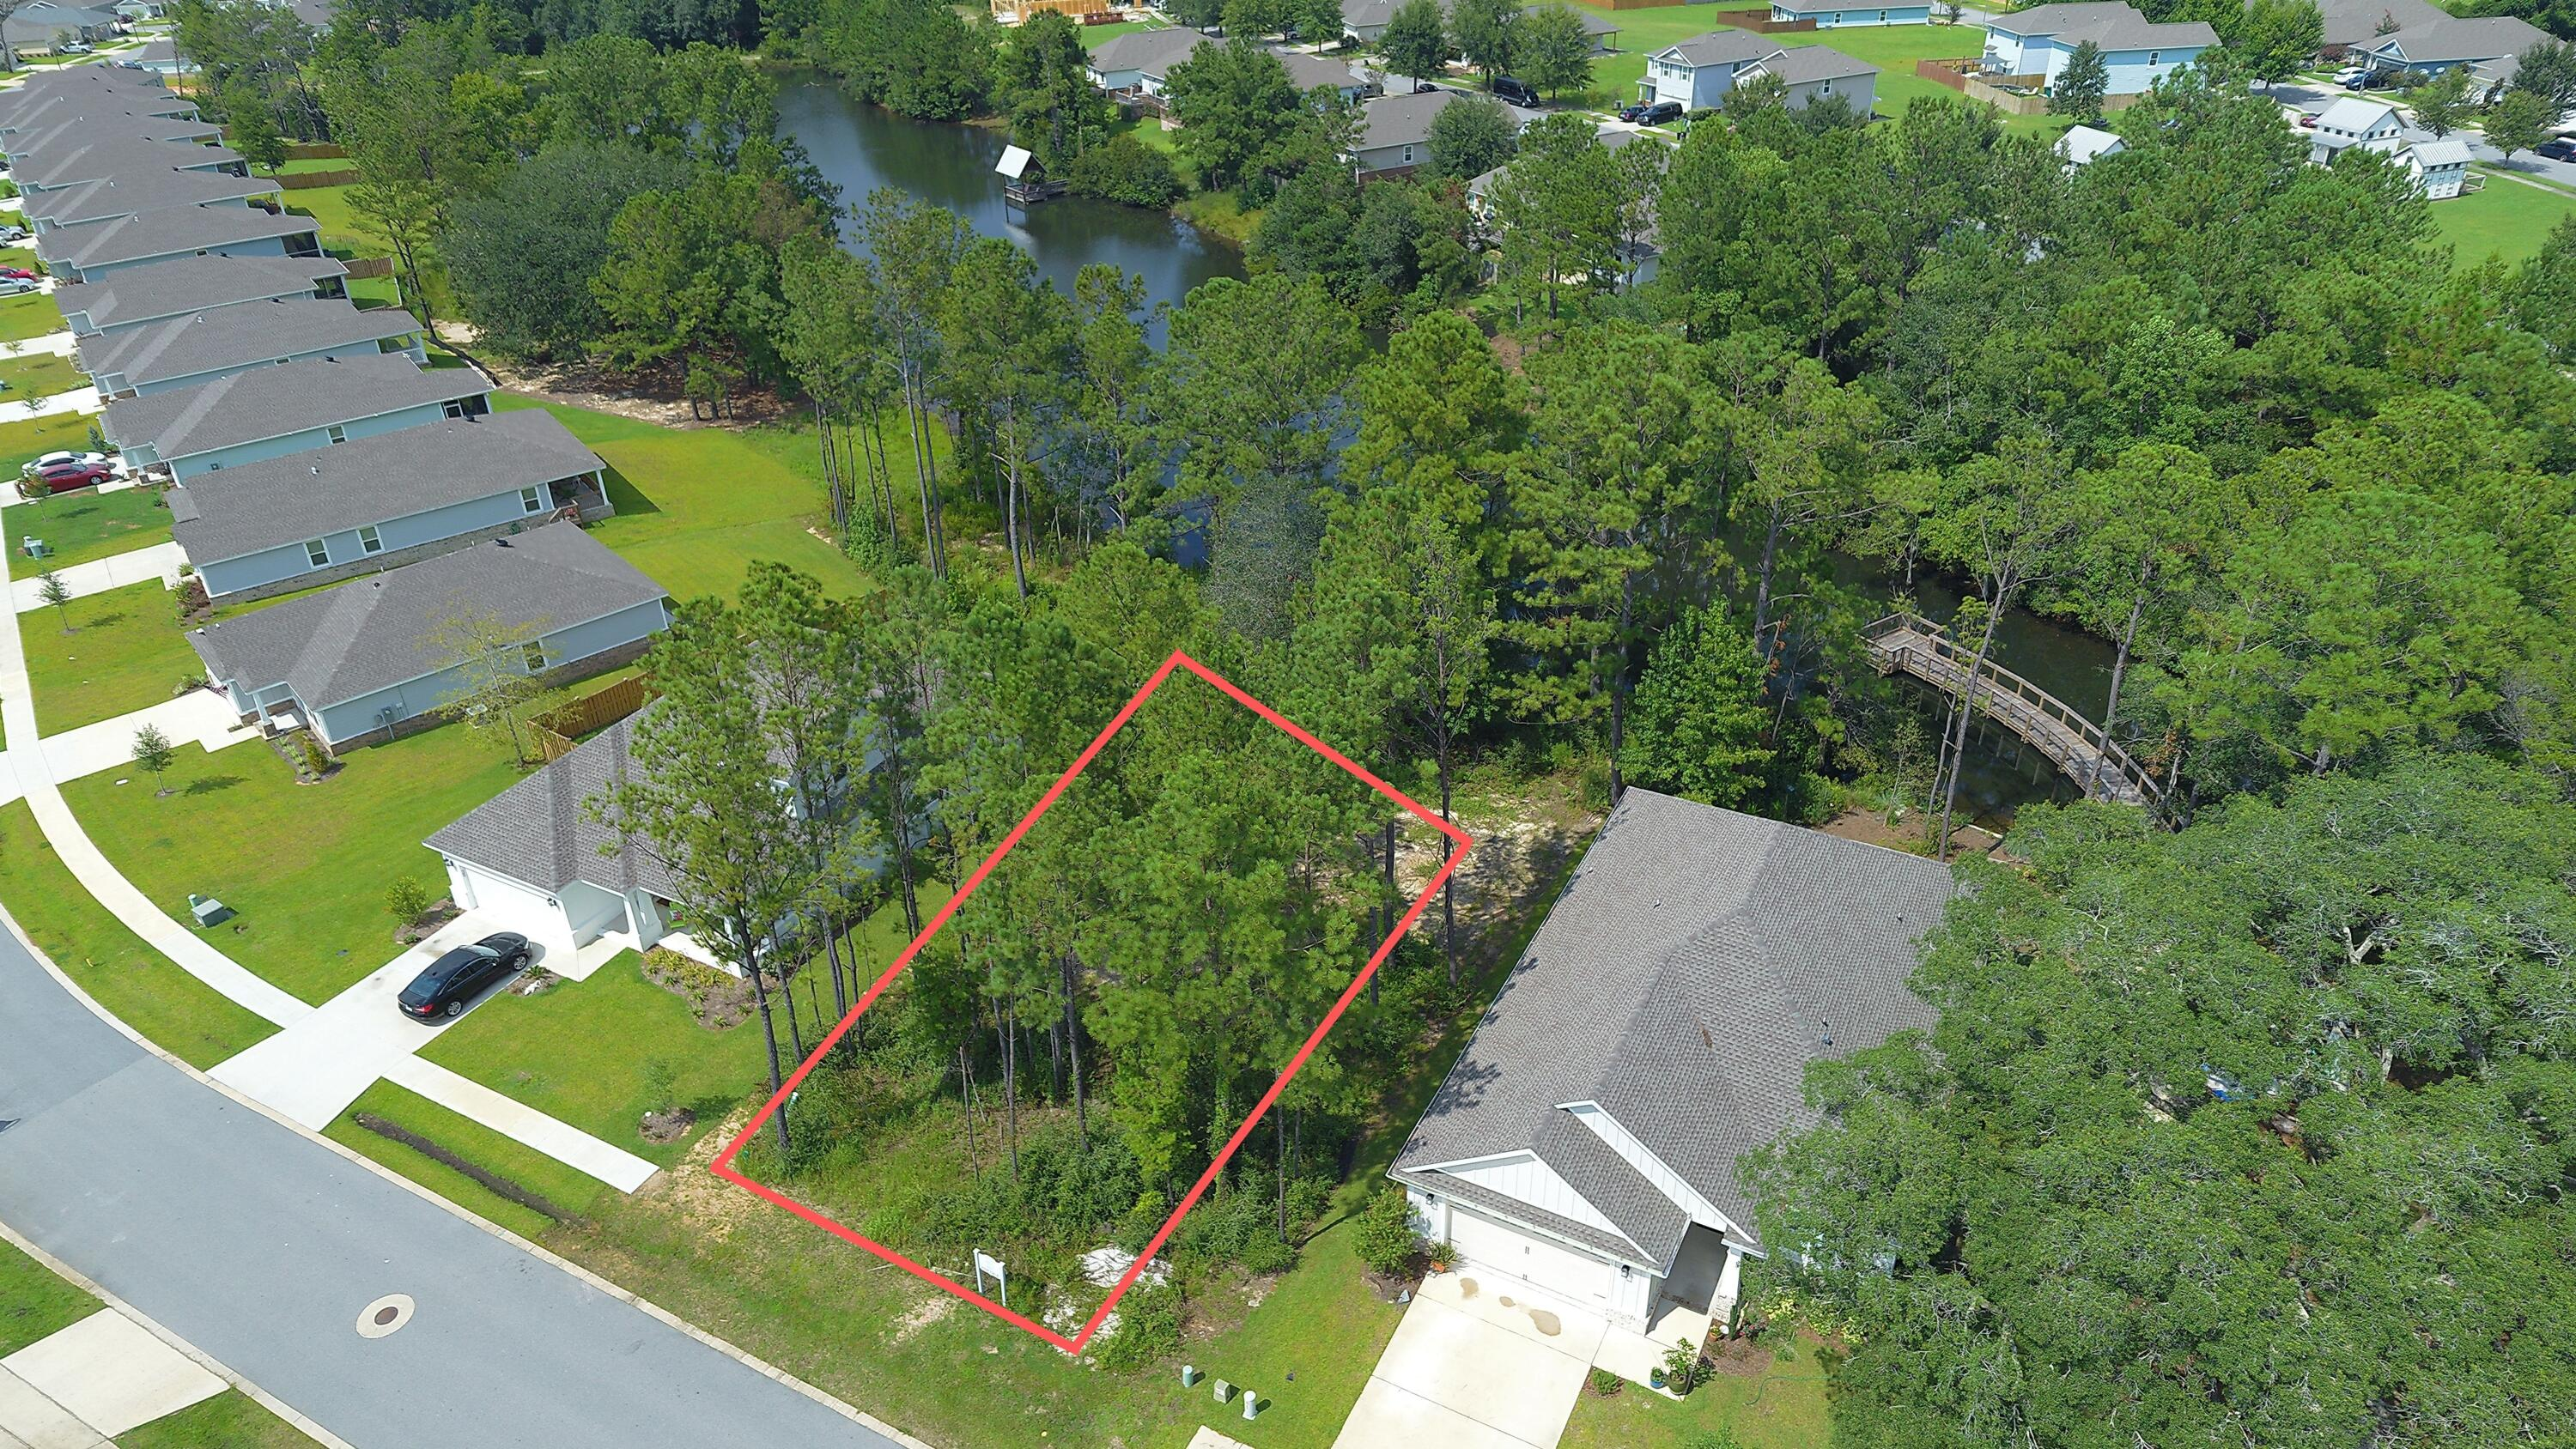 1 of 3 lots left in Lafayette Creek Landing, which is one of the newest neighborhoods of Freeport! Enjoy peaceful water views from your own back yard, overlooking the neighborhood lake. Lafayette Creek Landing is a 148 home, gated neighborhood with a pool, nature trails, and clubhouse including a fitness center. Homeowners will also be able to enjoy the canoe drop with access to the bay. Homes will range from 1500 sqft to 2700sqft with Tap Fees Paid!